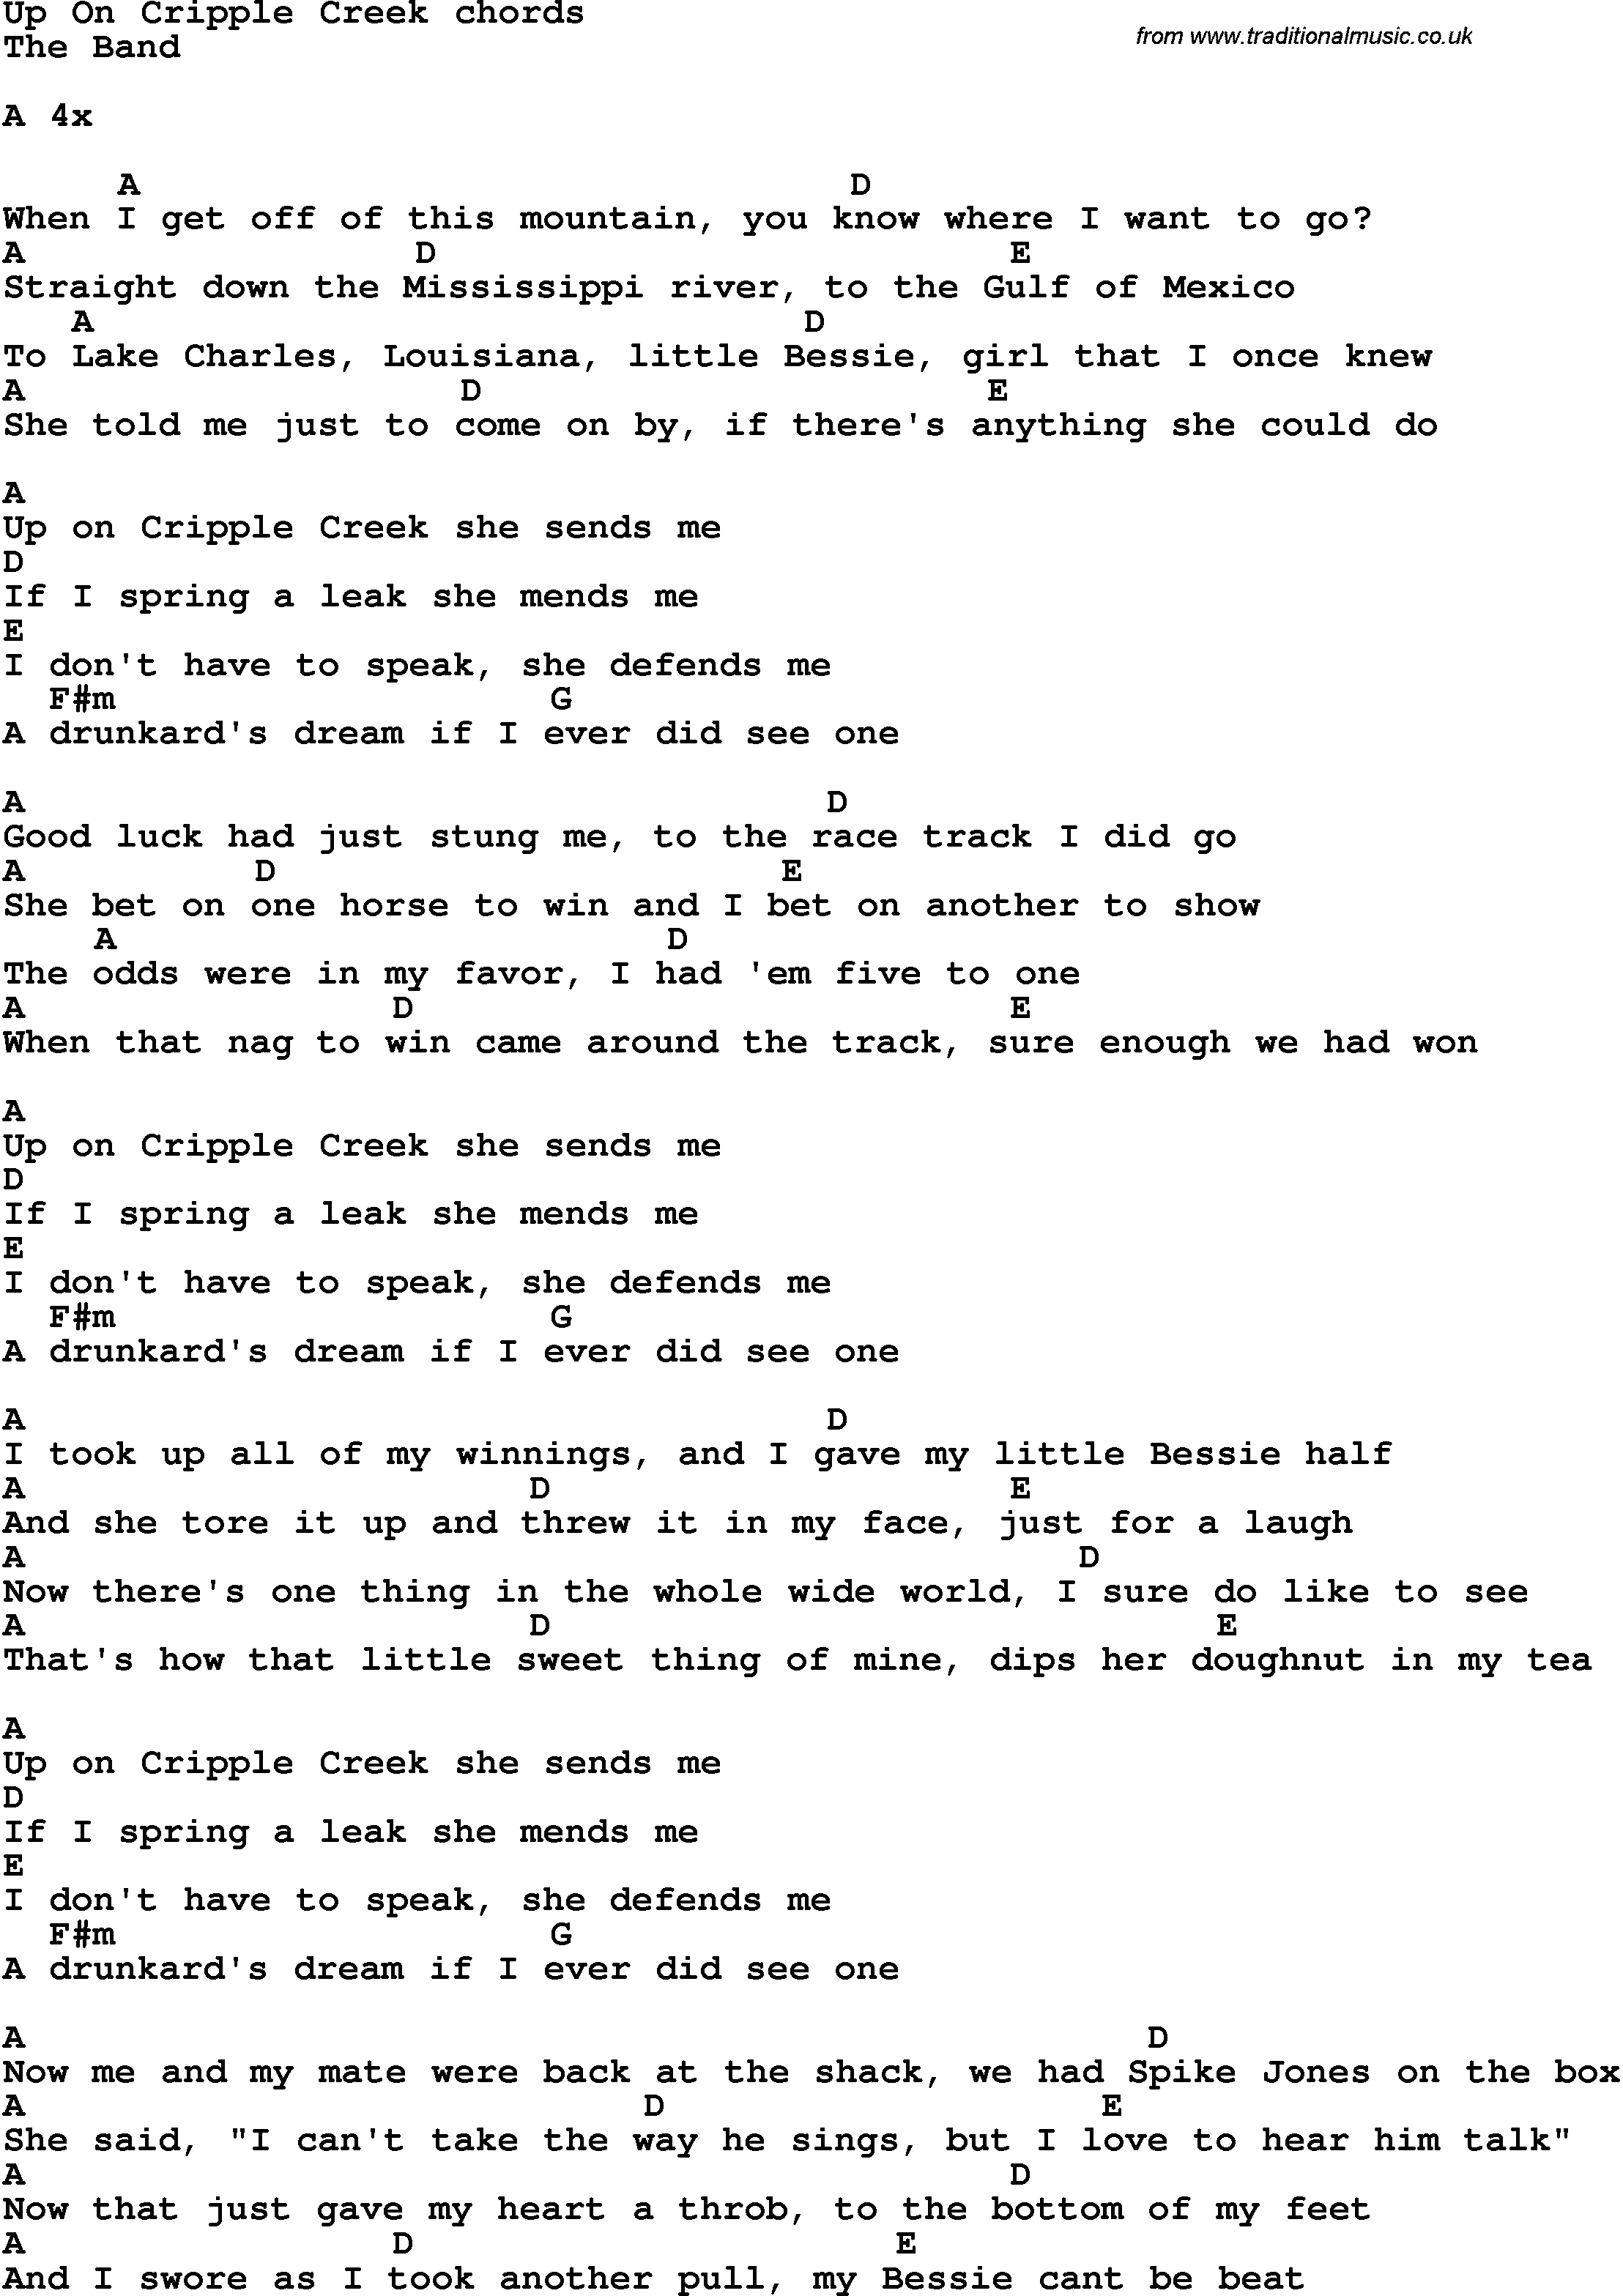 Song Lyrics With Guitar Chords For Up On Cripple Creek